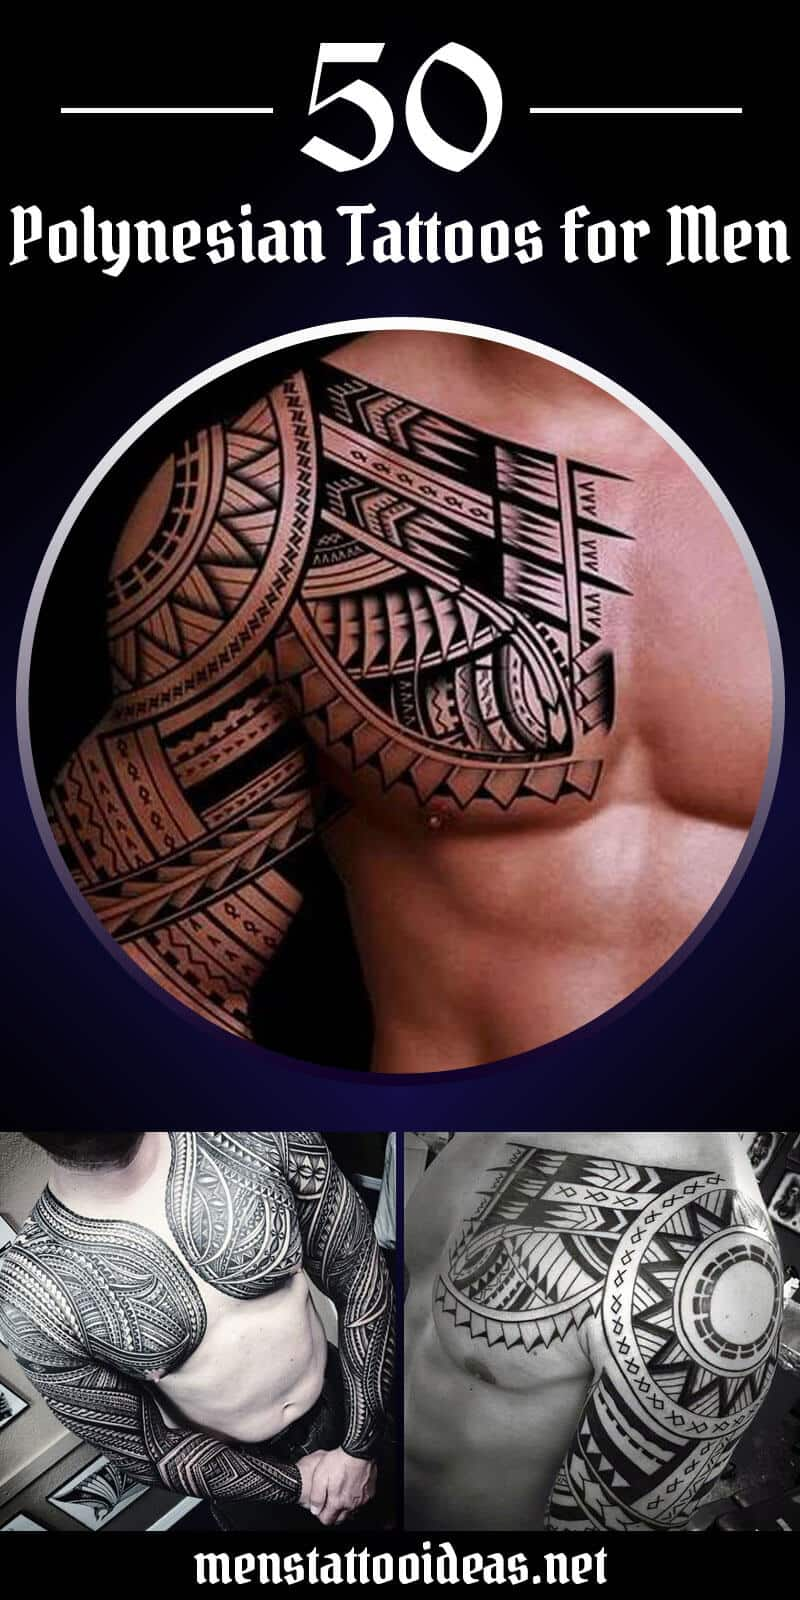 Polynesian Tattoos For Men Ideas And Designs For Guys,Drawing Easy Elements And Principles Of Design Matrix